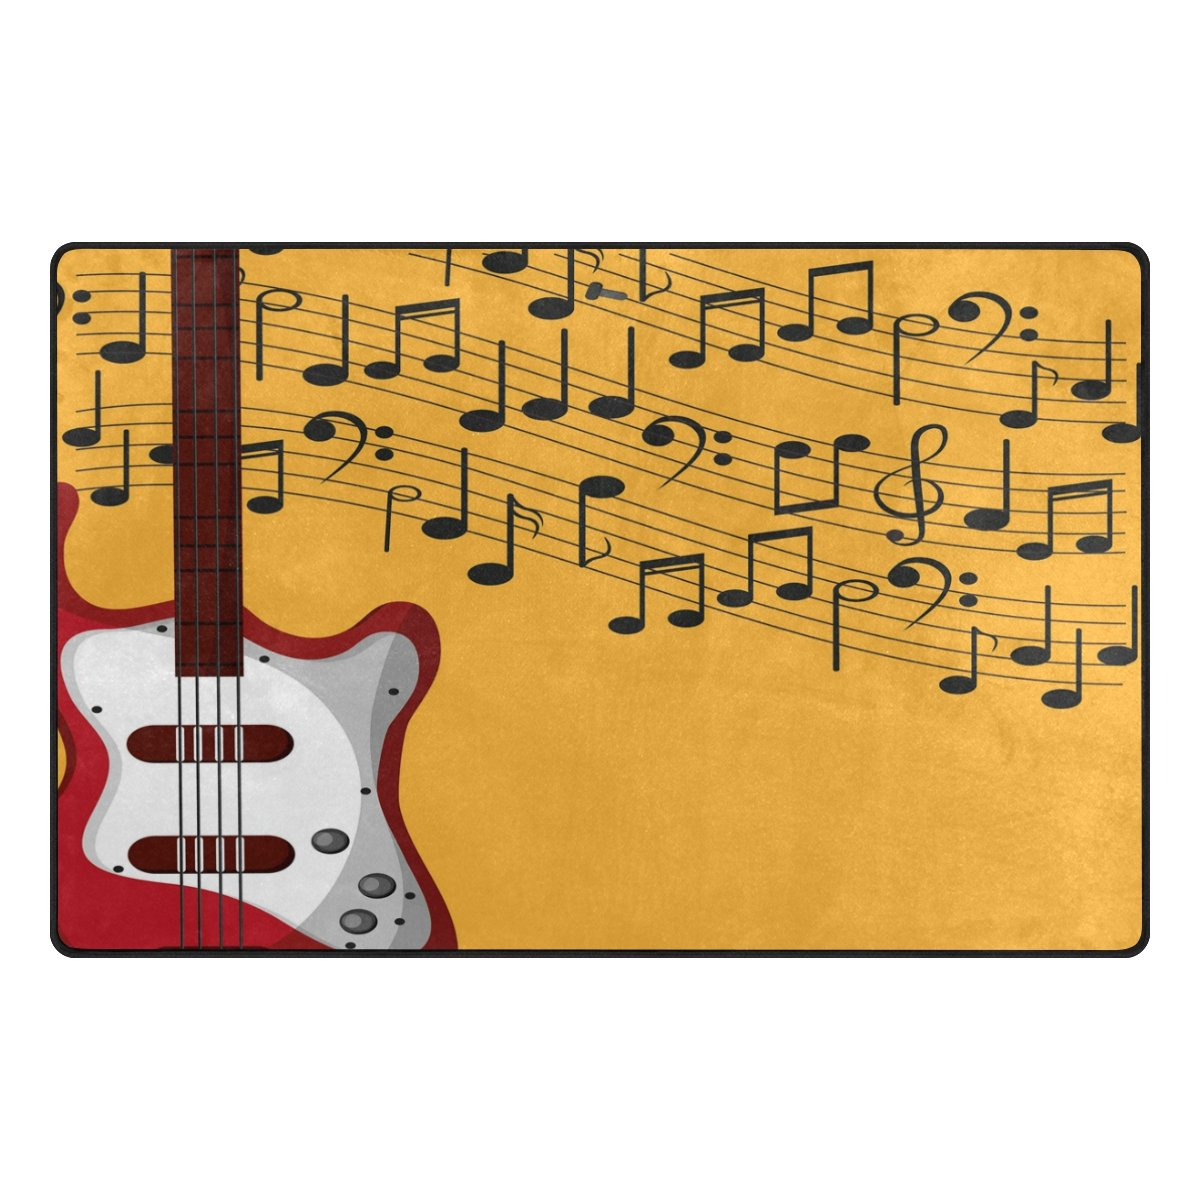 WOZO Yellow Black Music Note Red Guitar Area Rug Rugs Non-Slip Floor Mat Doormats Living Room Bedroom 31 x 20 inches g3327195p146c161s240